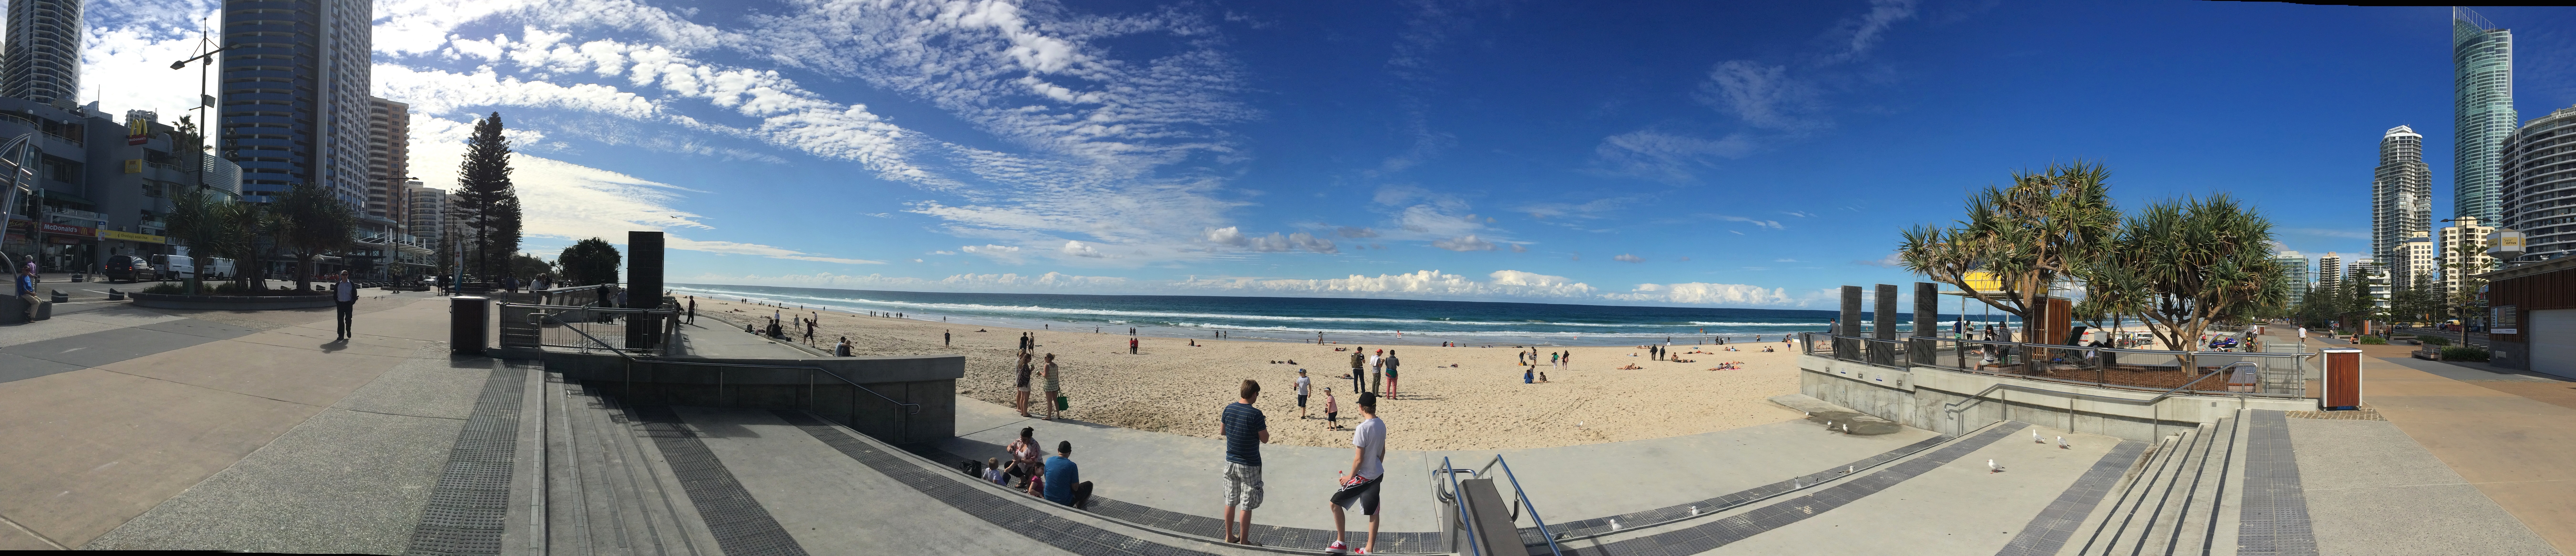 Gold Coast Surfers Paradise Beach Panorama